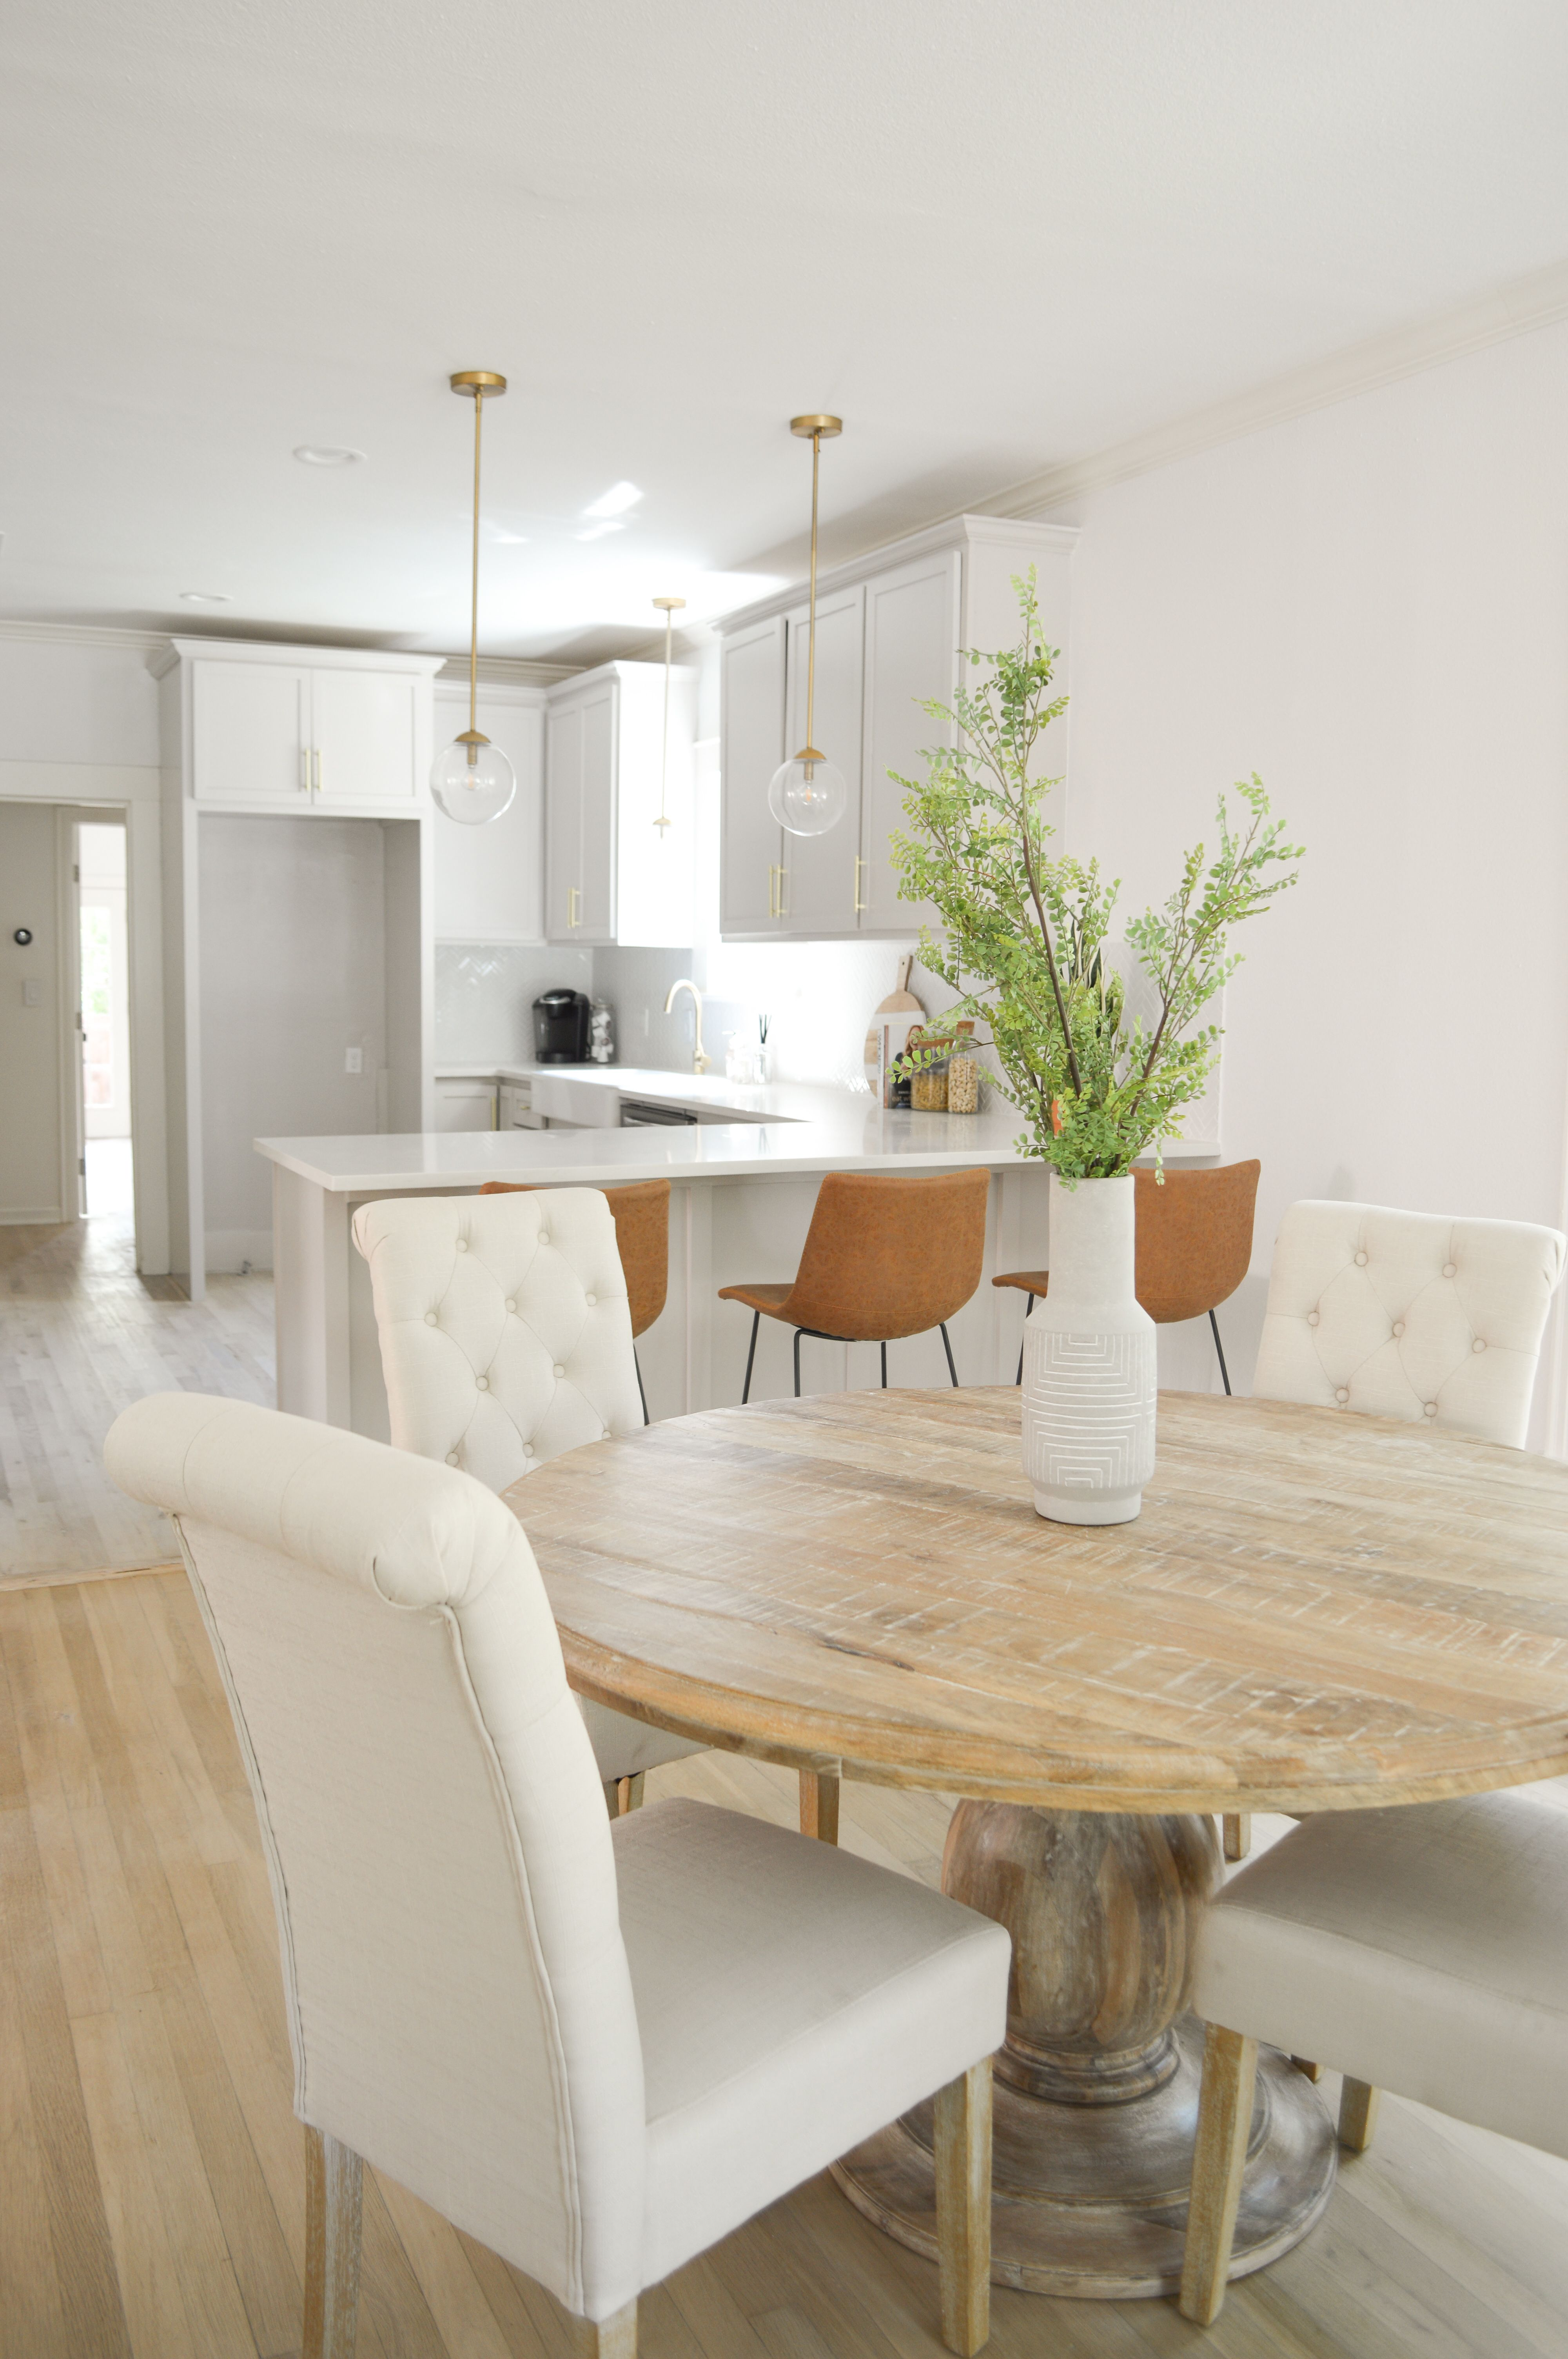 The Byers Project Modern Farmhouse Dining Table And Chairs Grey Kitchen Cabinets Modern Farmhouse Dining